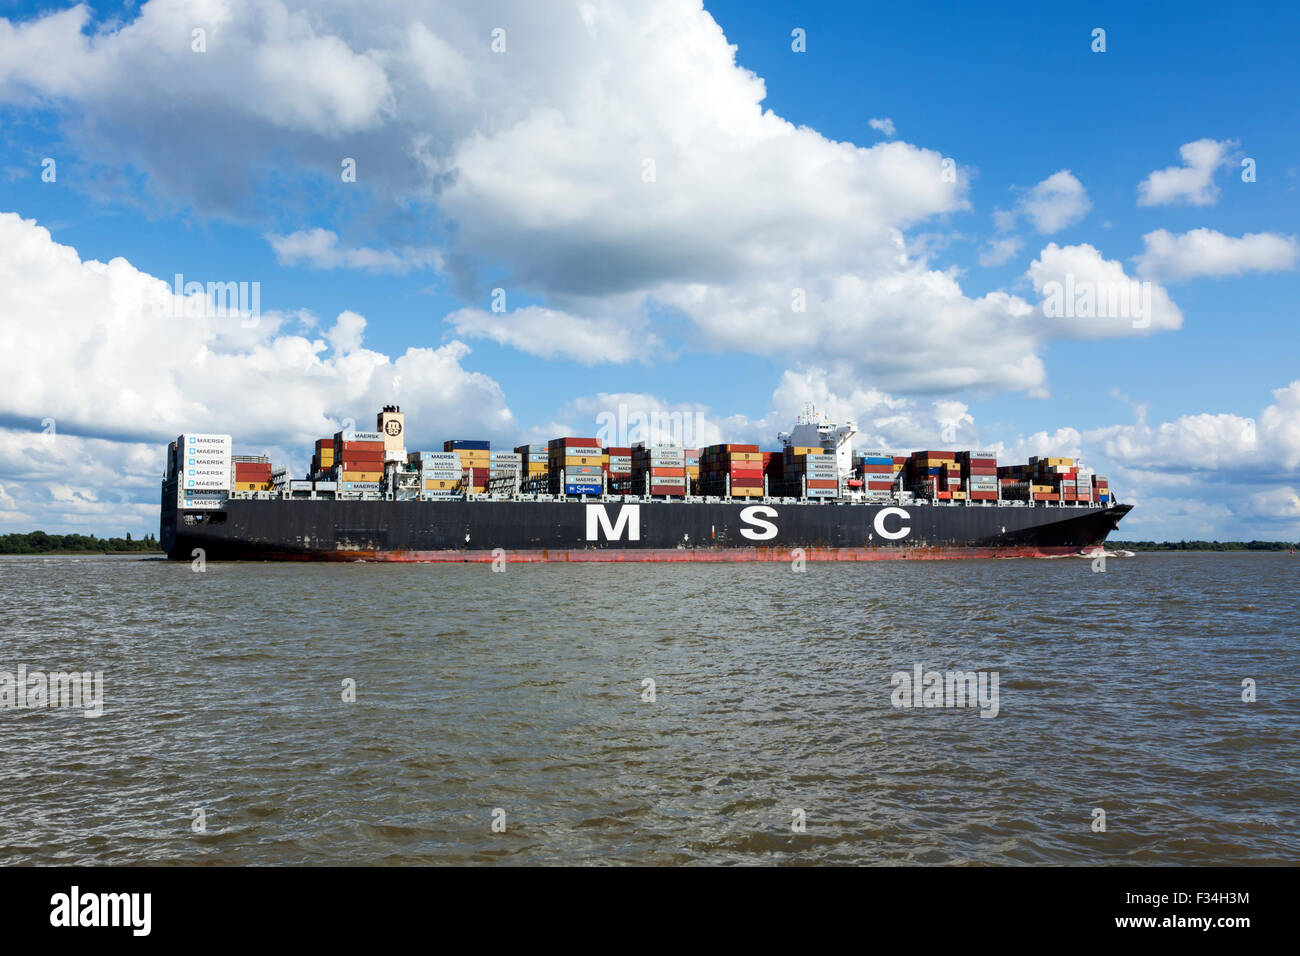 Container ship MSC Lauren on the Elbe river heading to the port of Hamburg - Stock Image